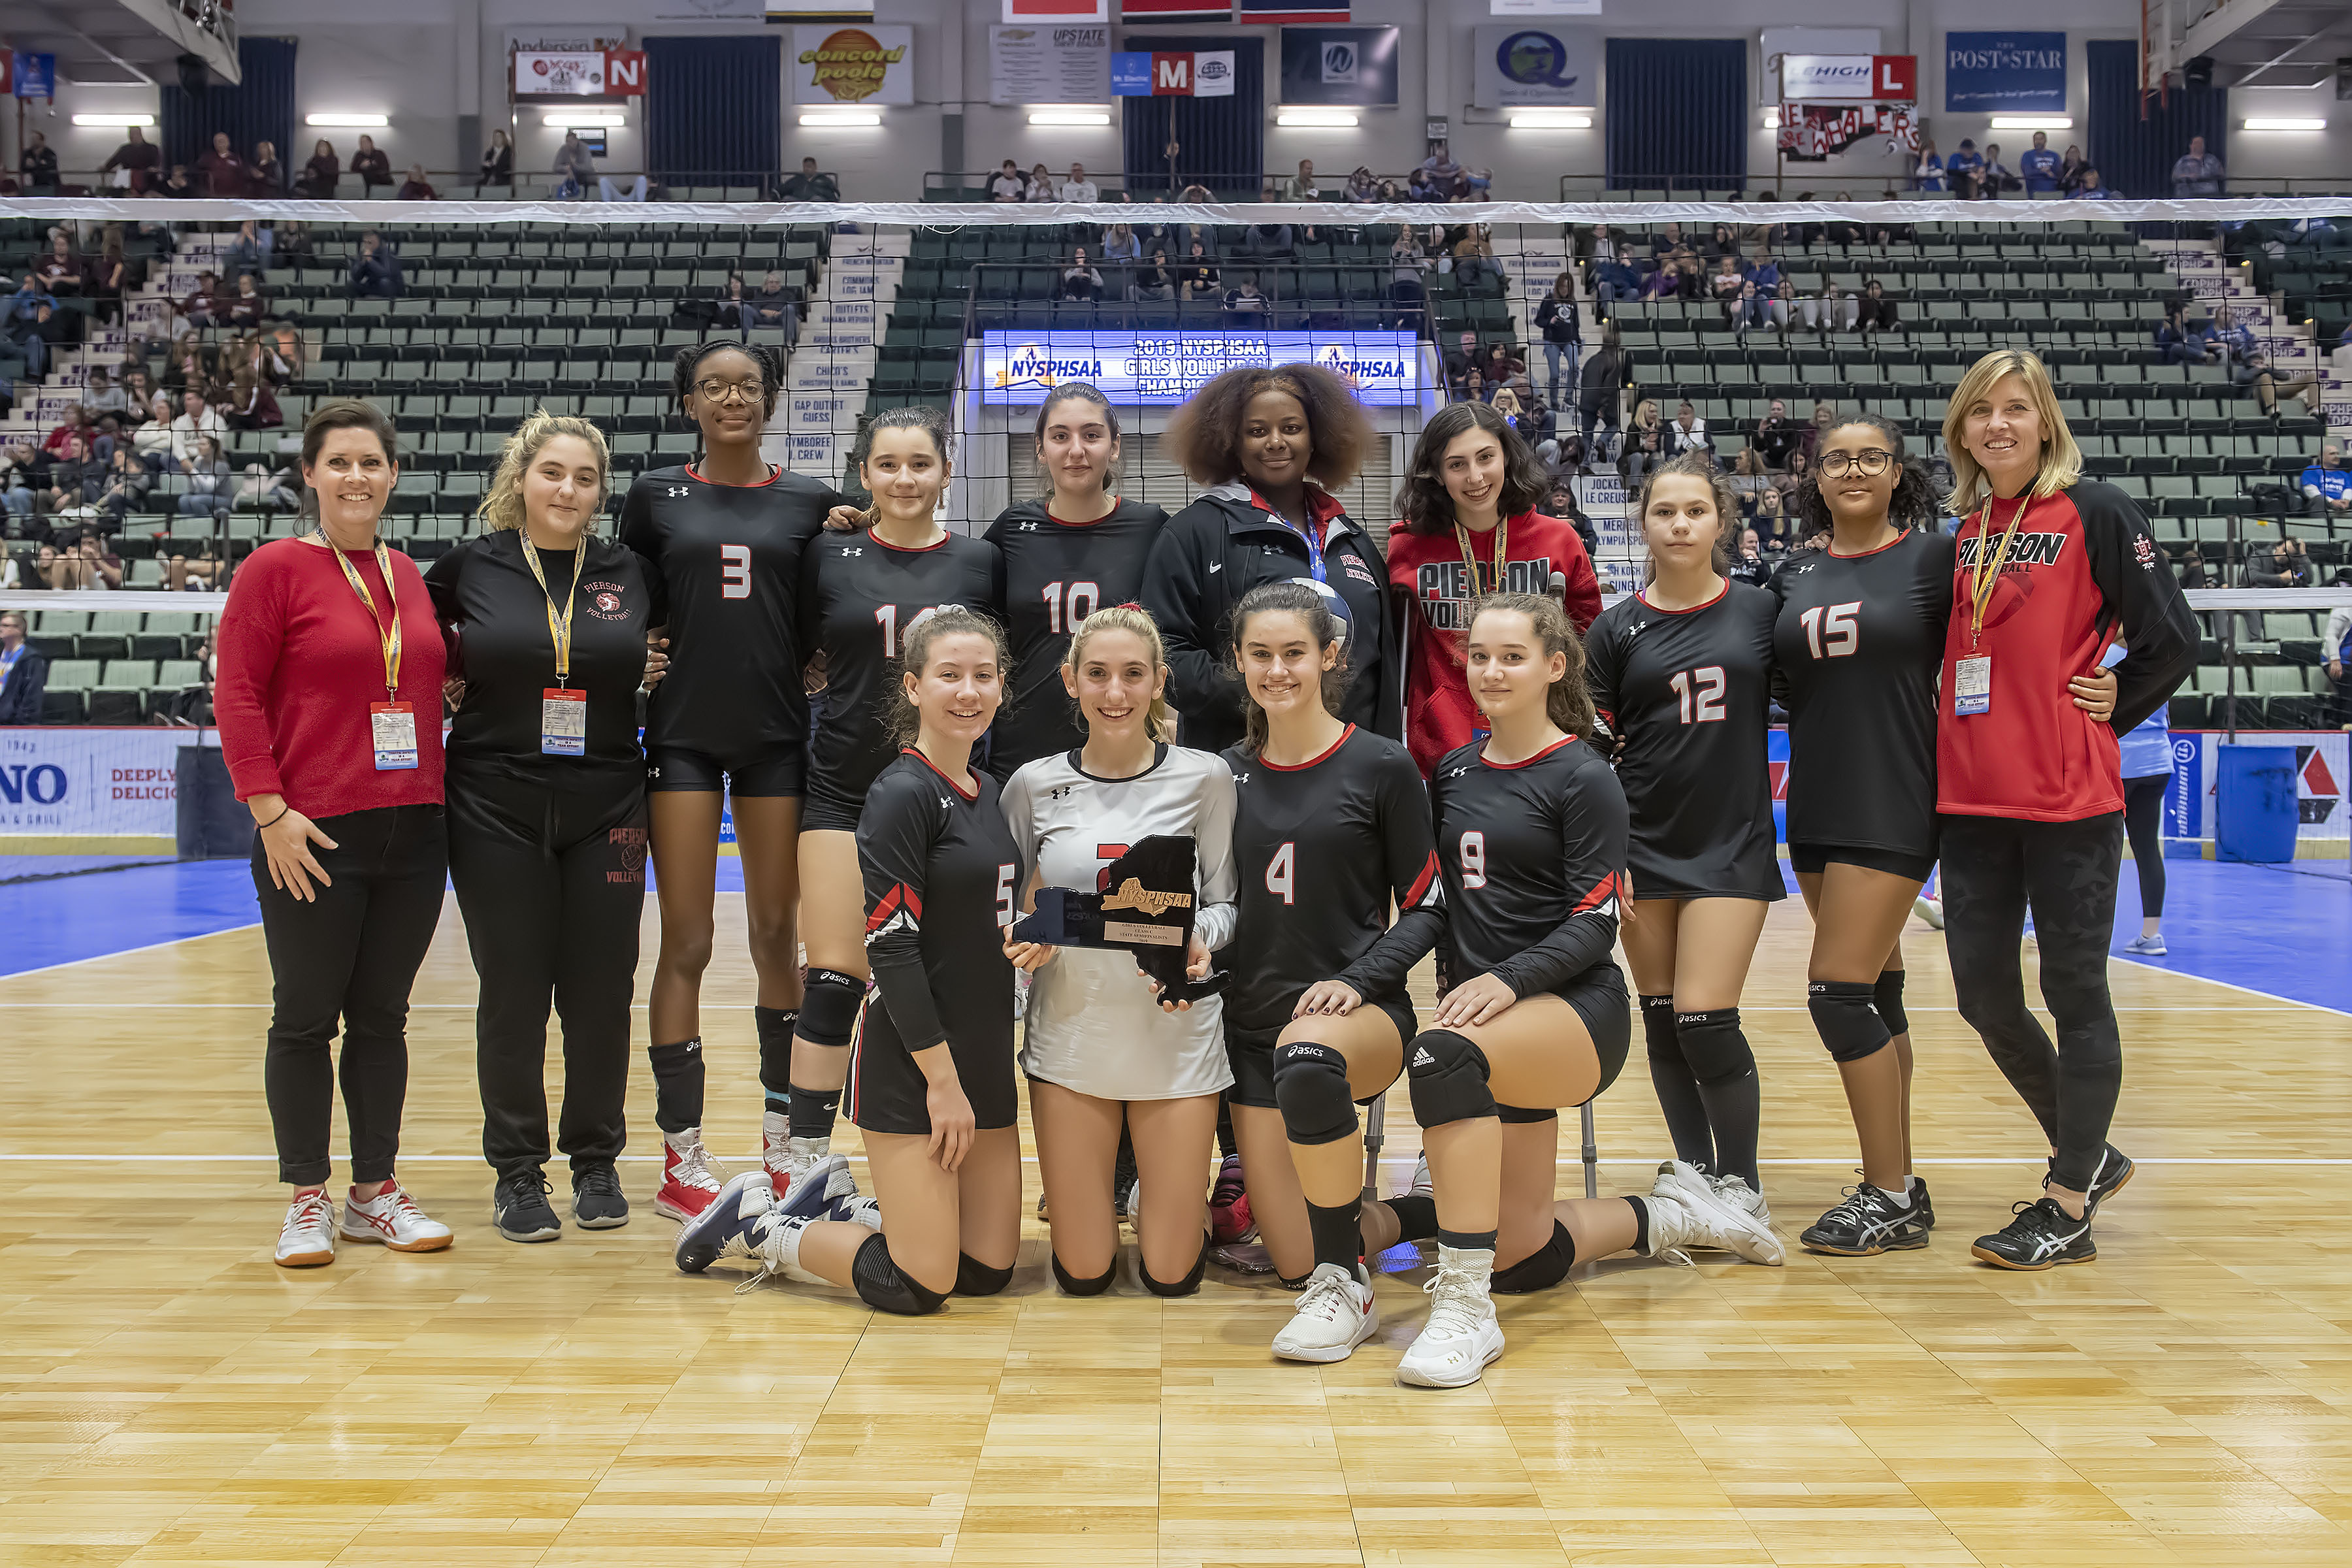 The Pierson/Bridgehampton girls volleyball team reached the New York State Public High School Championships for the second time in three years.